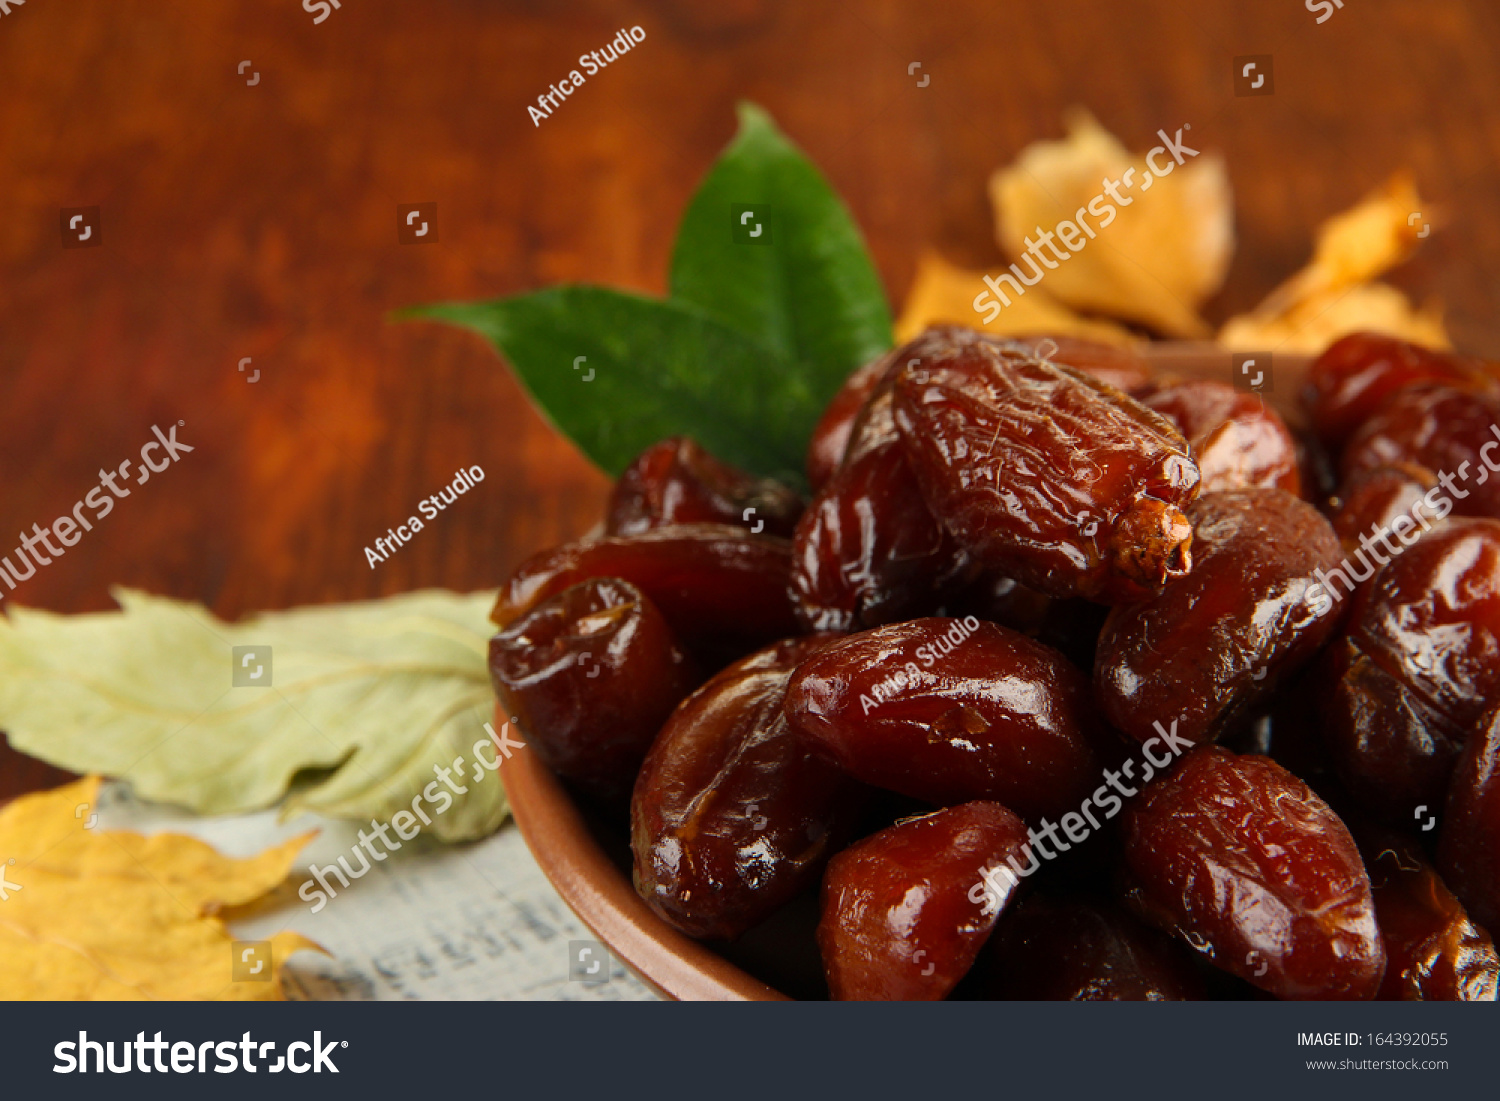 Dried Dates On Plate Yellow Leaves Stock Photo 164392055 ...